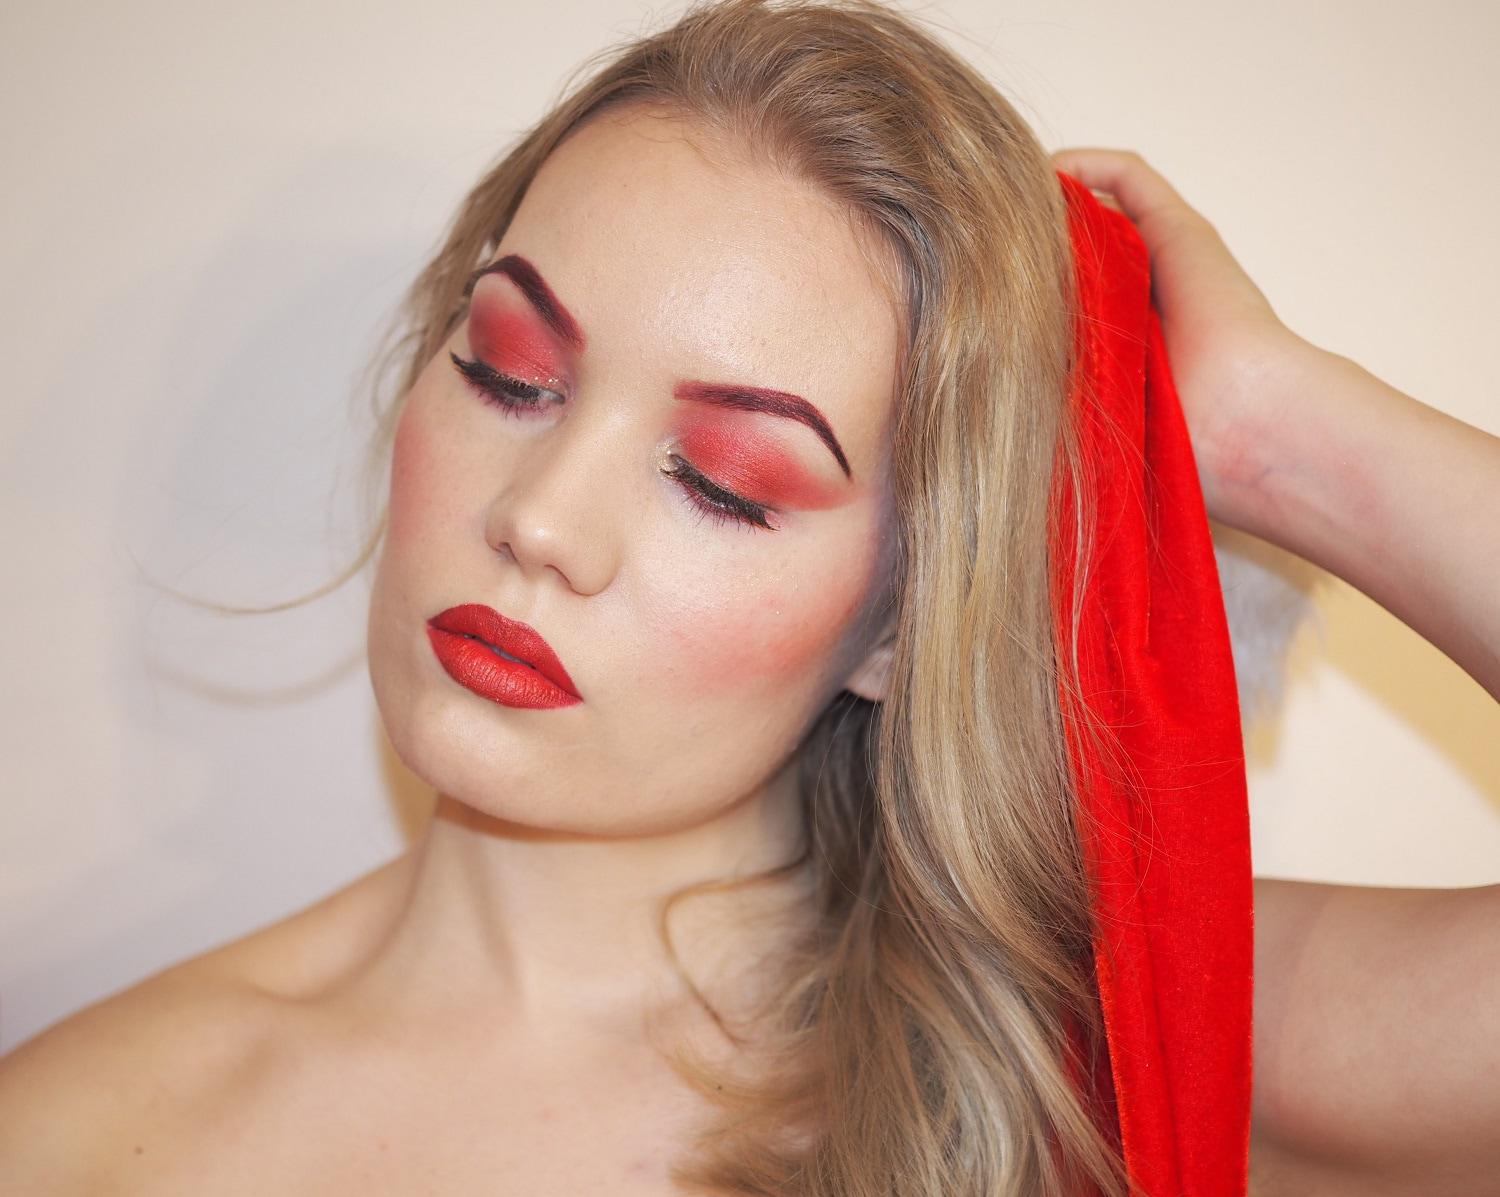 isadora joulukalenteri 2018 Wrapped in red   Charlotta Eve isadora joulukalenteri 2018